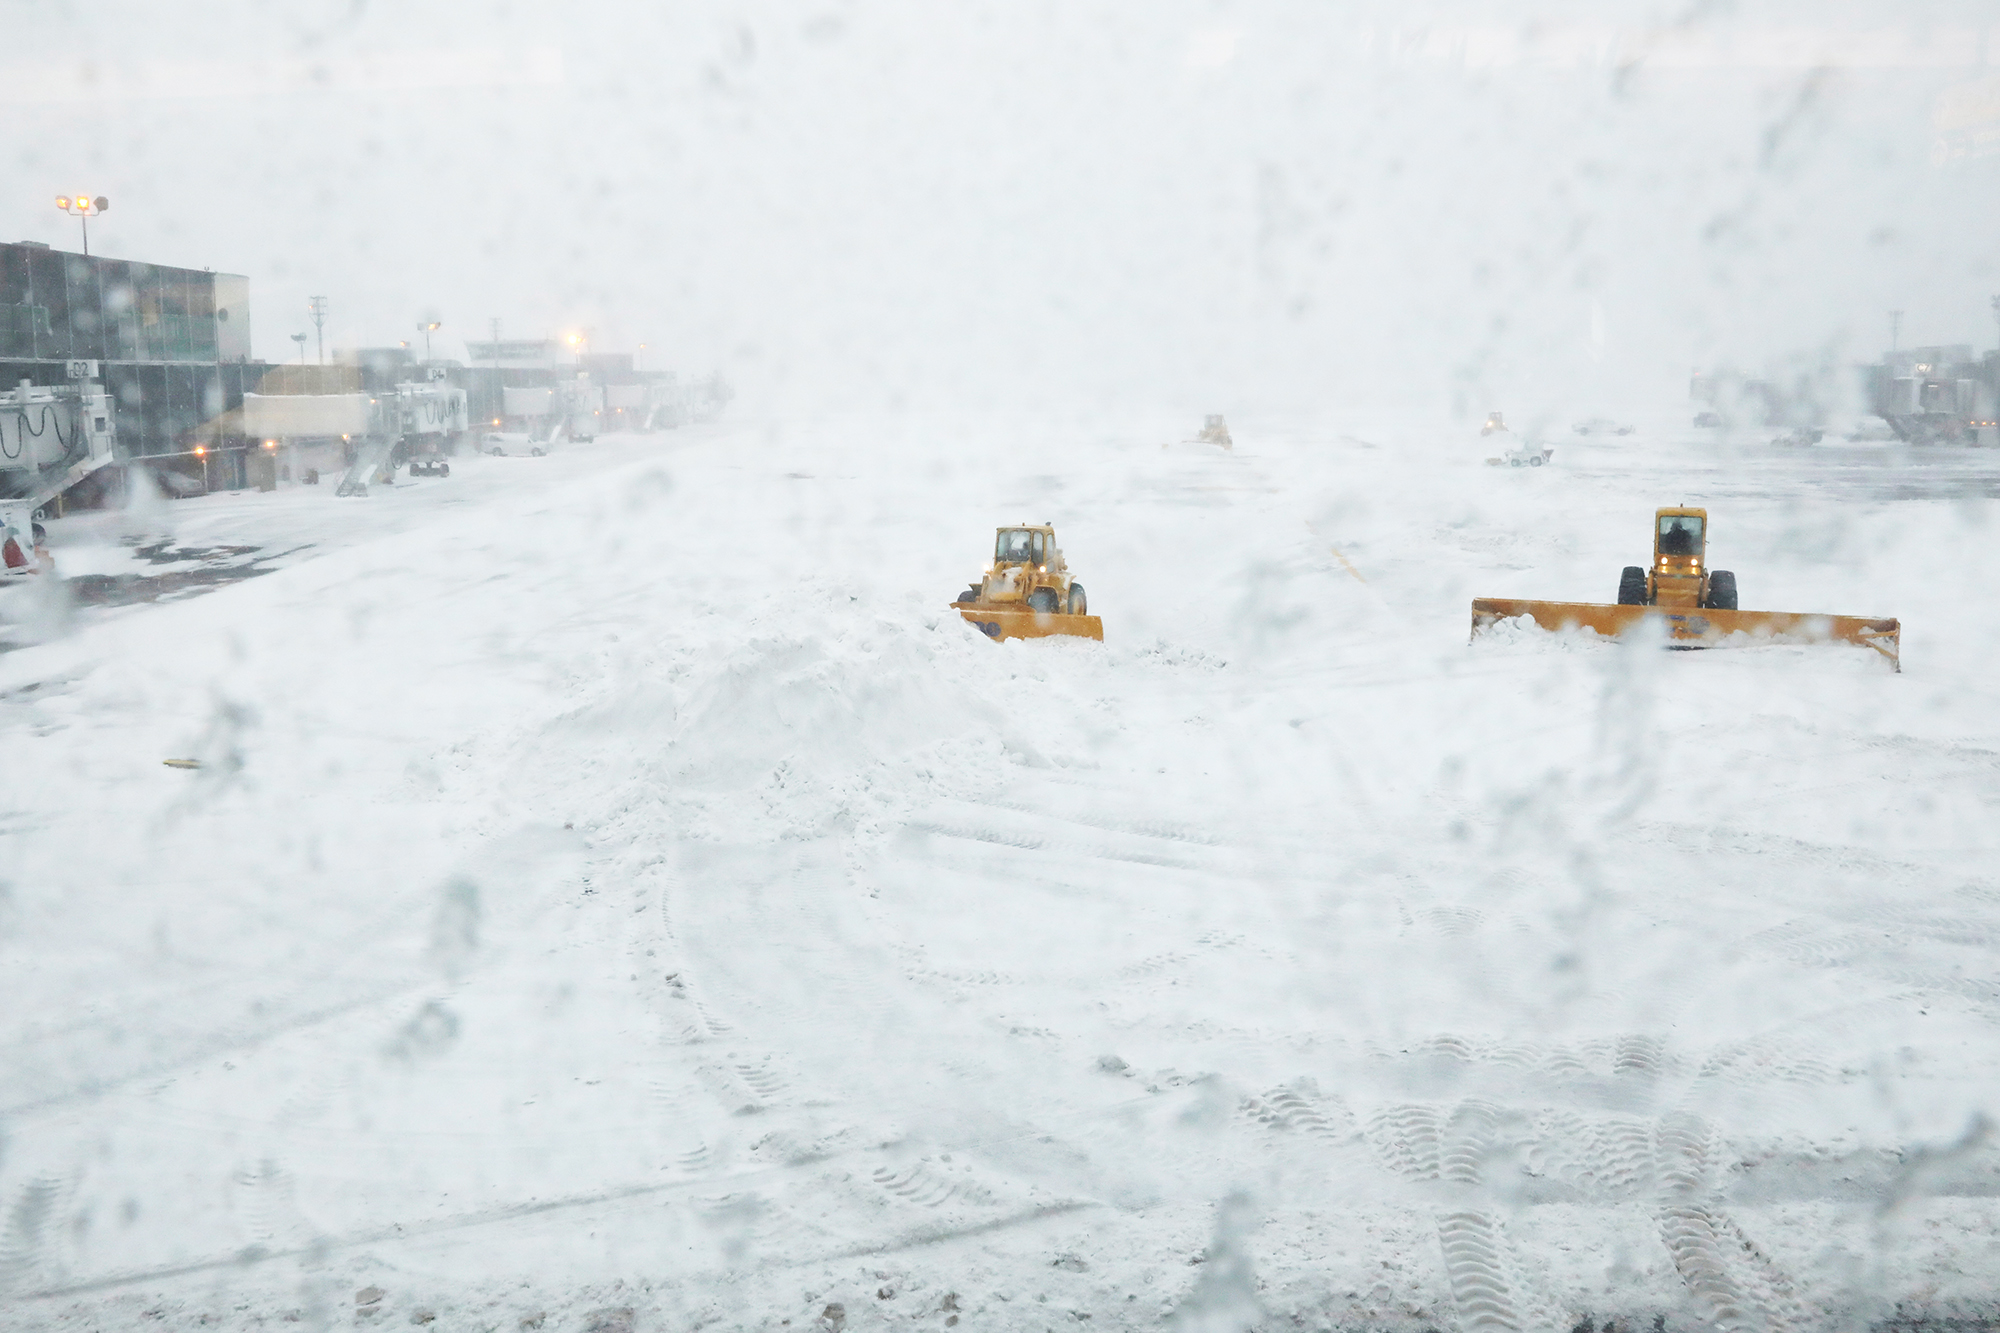 Snowplows clear the runway of snow at LaGuardia Airport in New York City, on March 14, 2017.